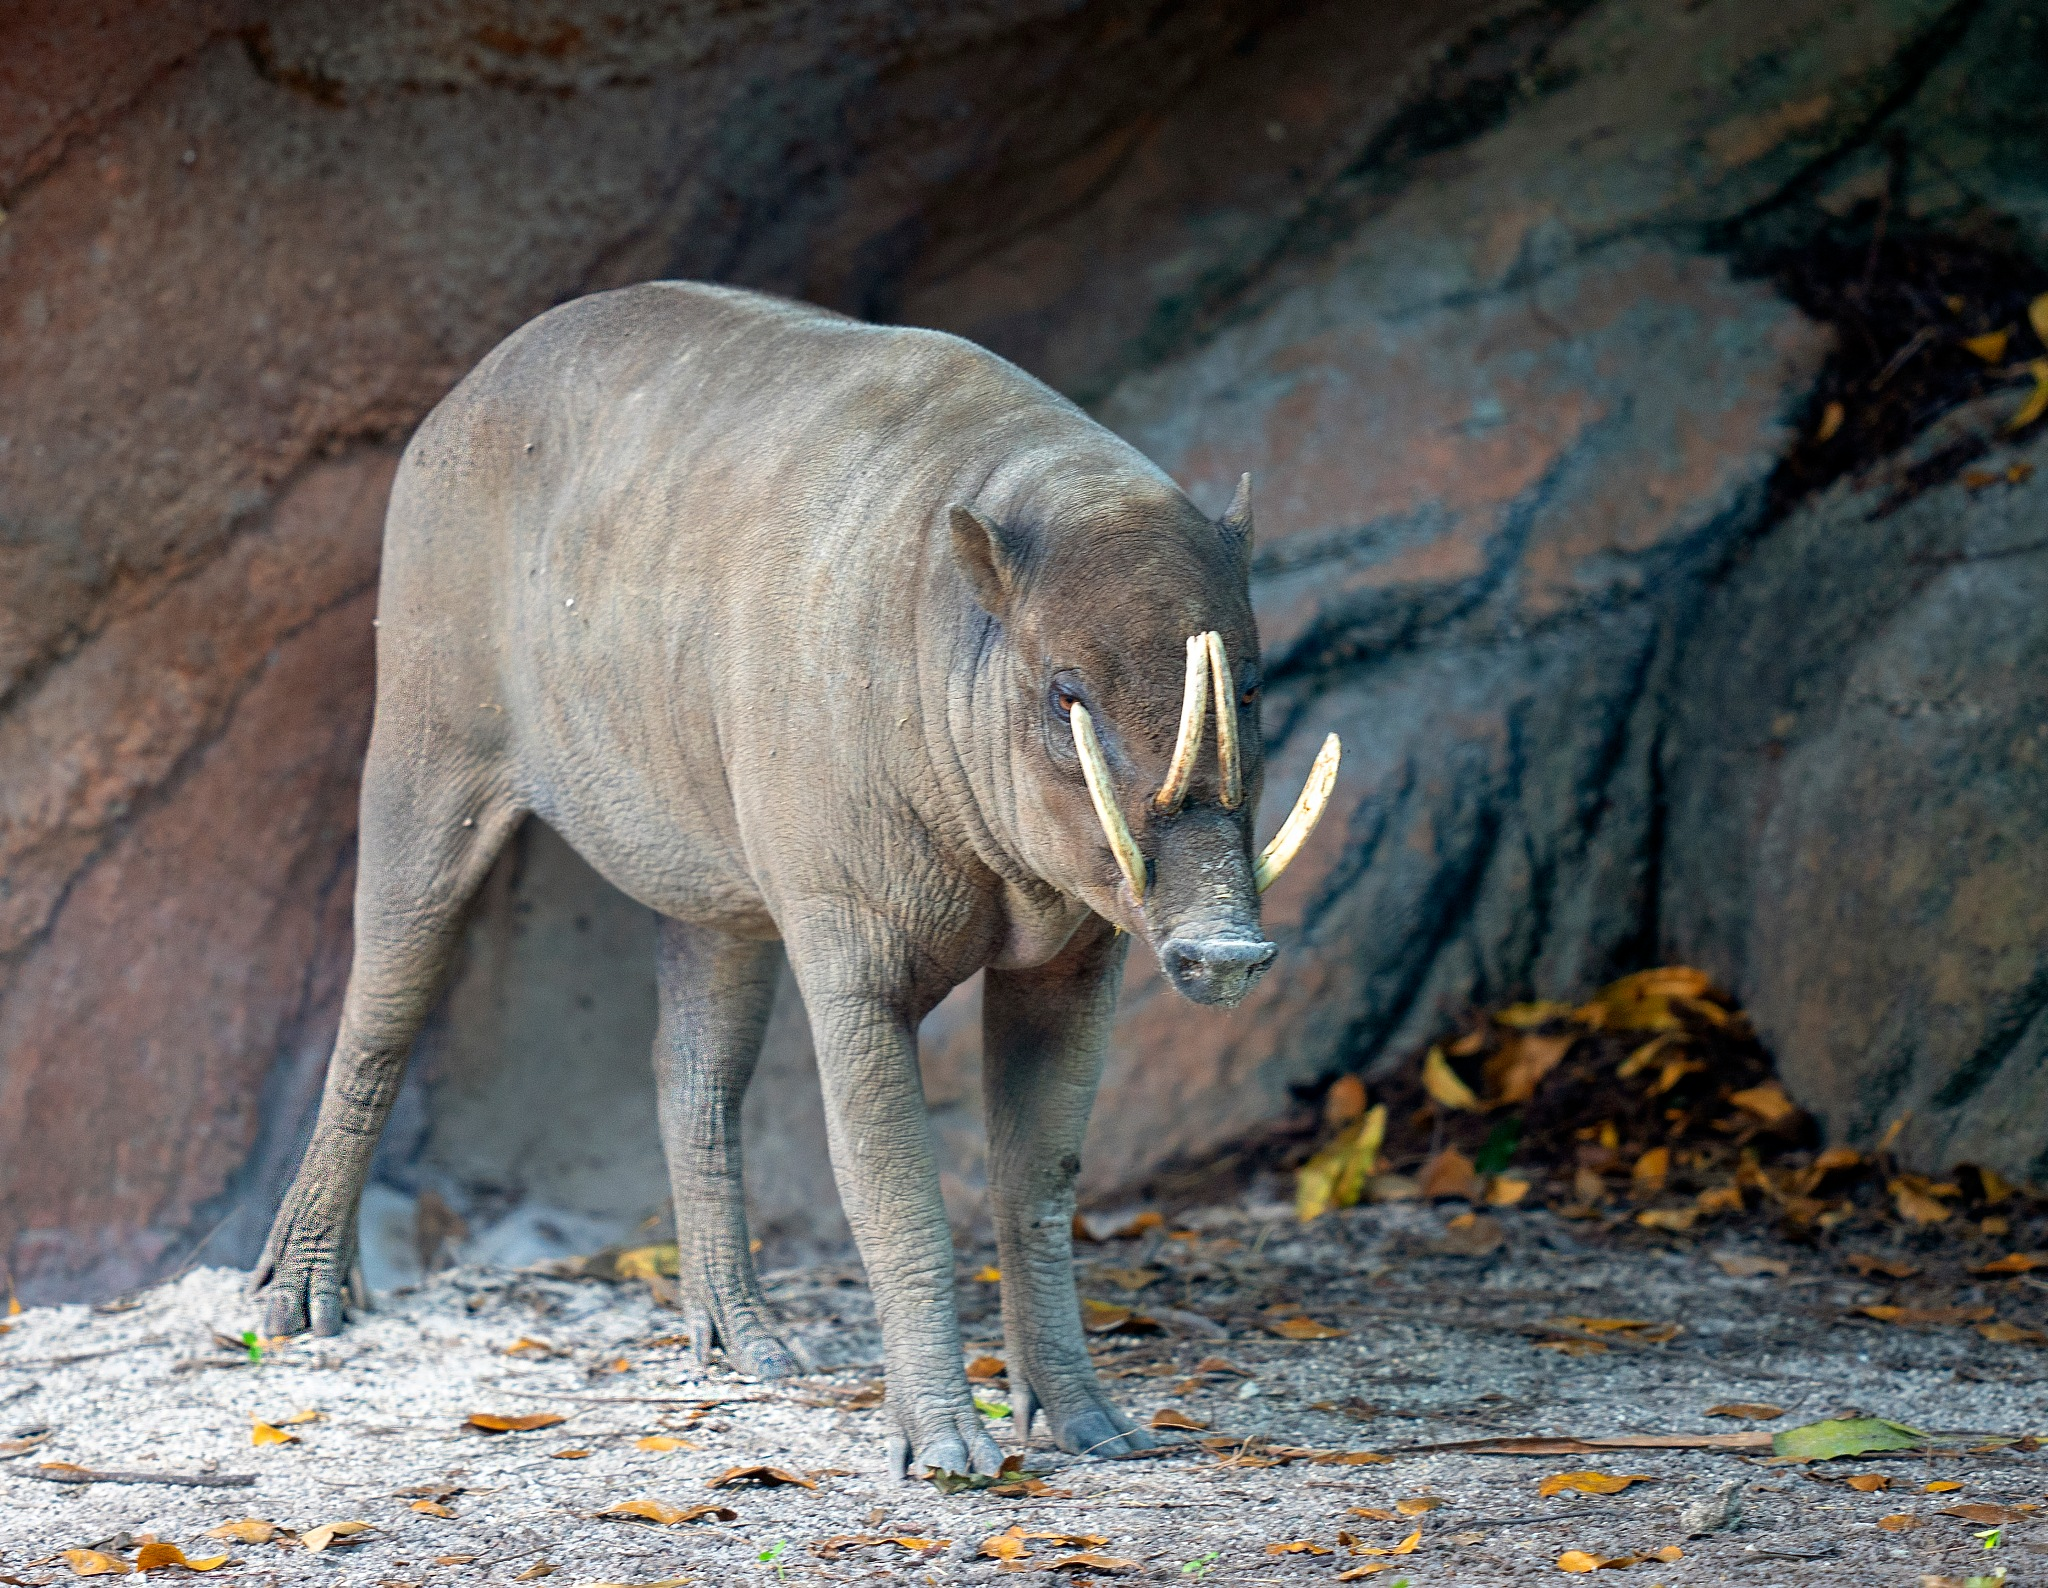 Babirusa by Terry R. Stahly